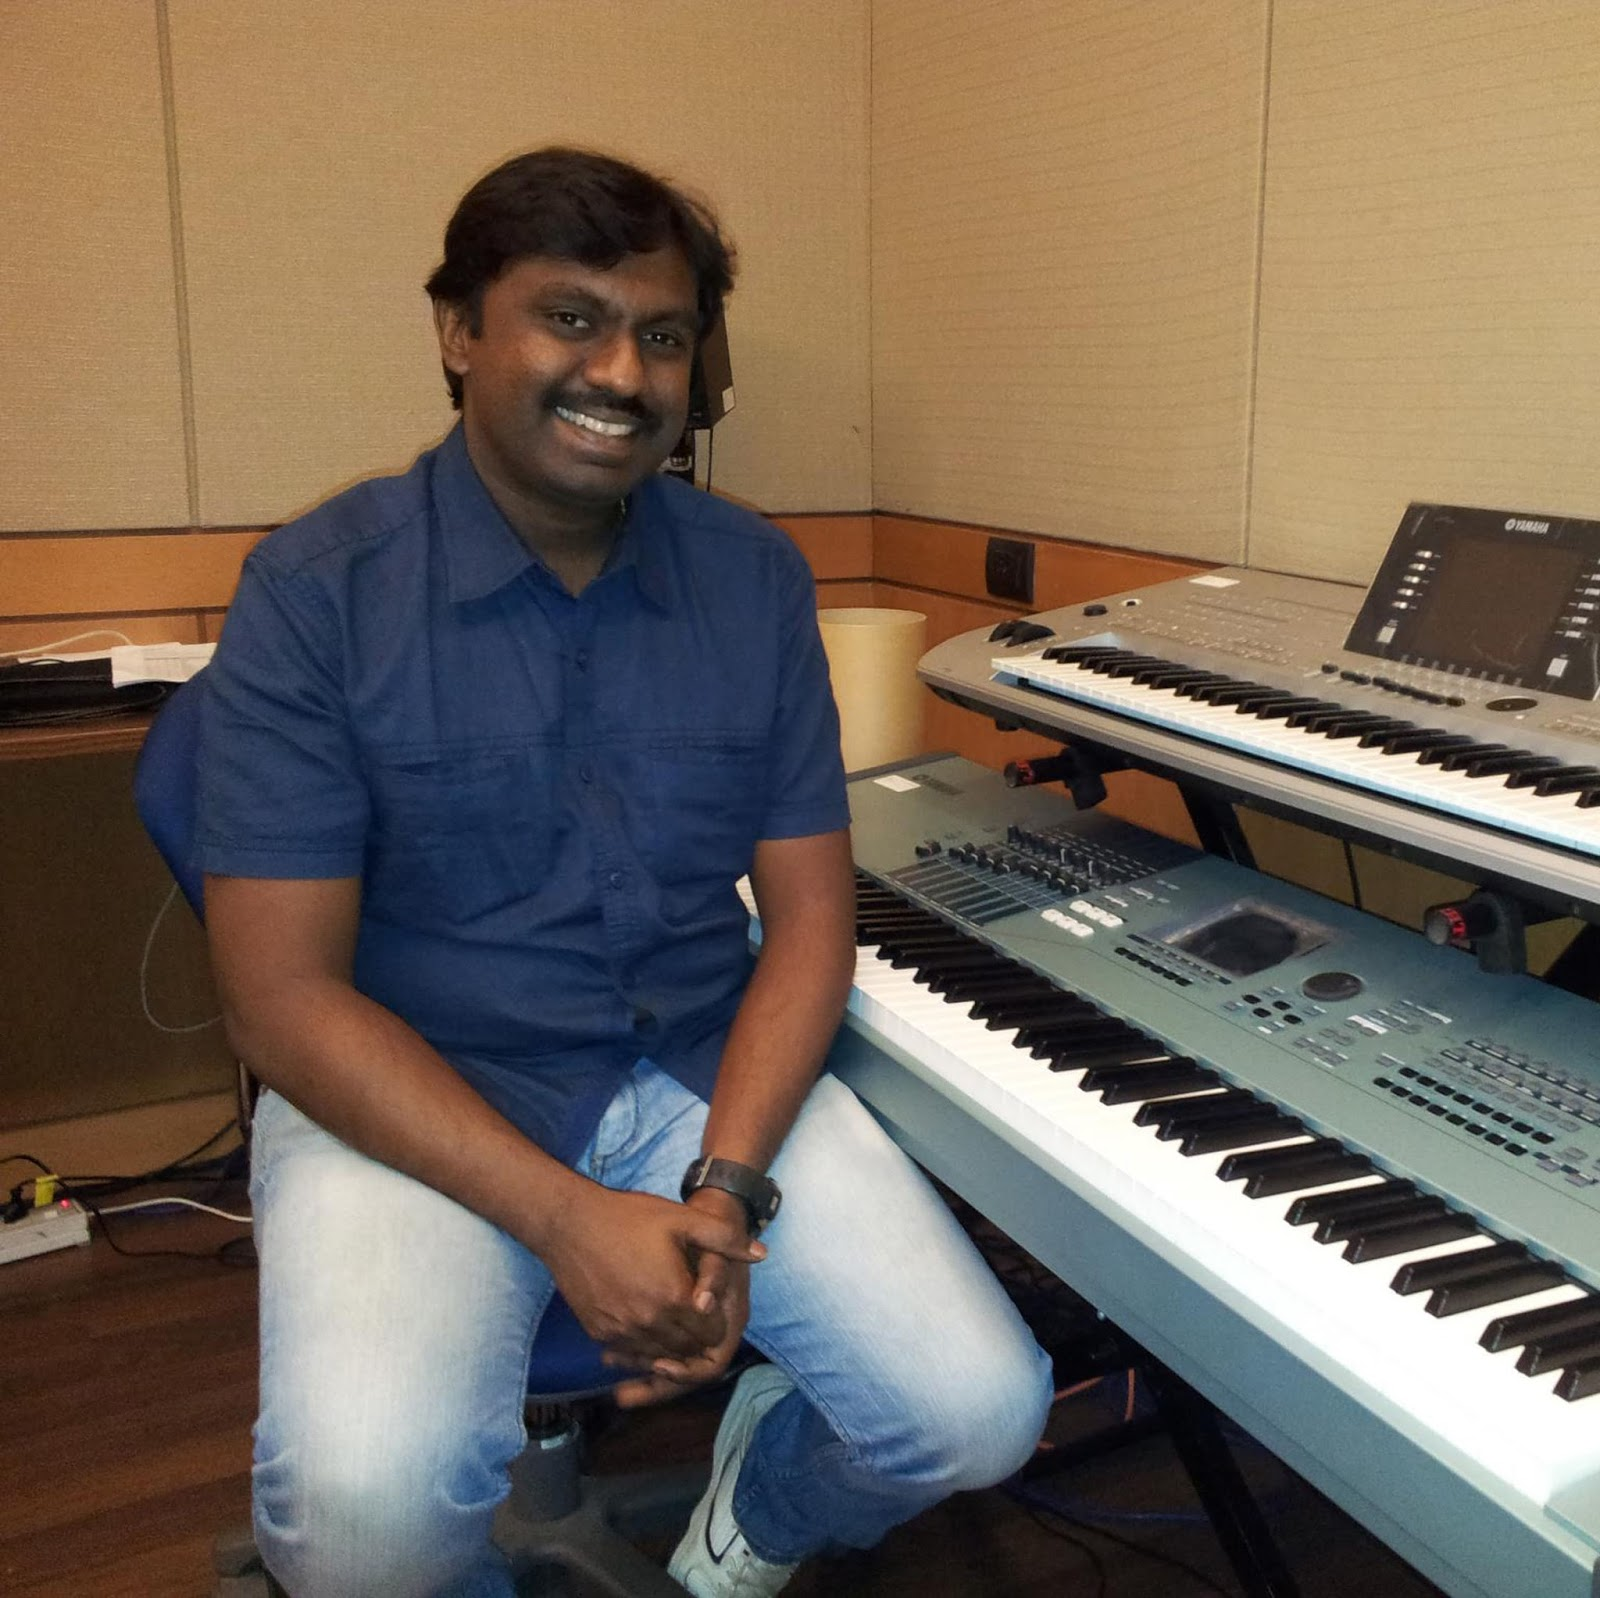 raj a music producer based in chennai rajkumar and his family have been in chennai for the past 30 years and have become very much a part of the city